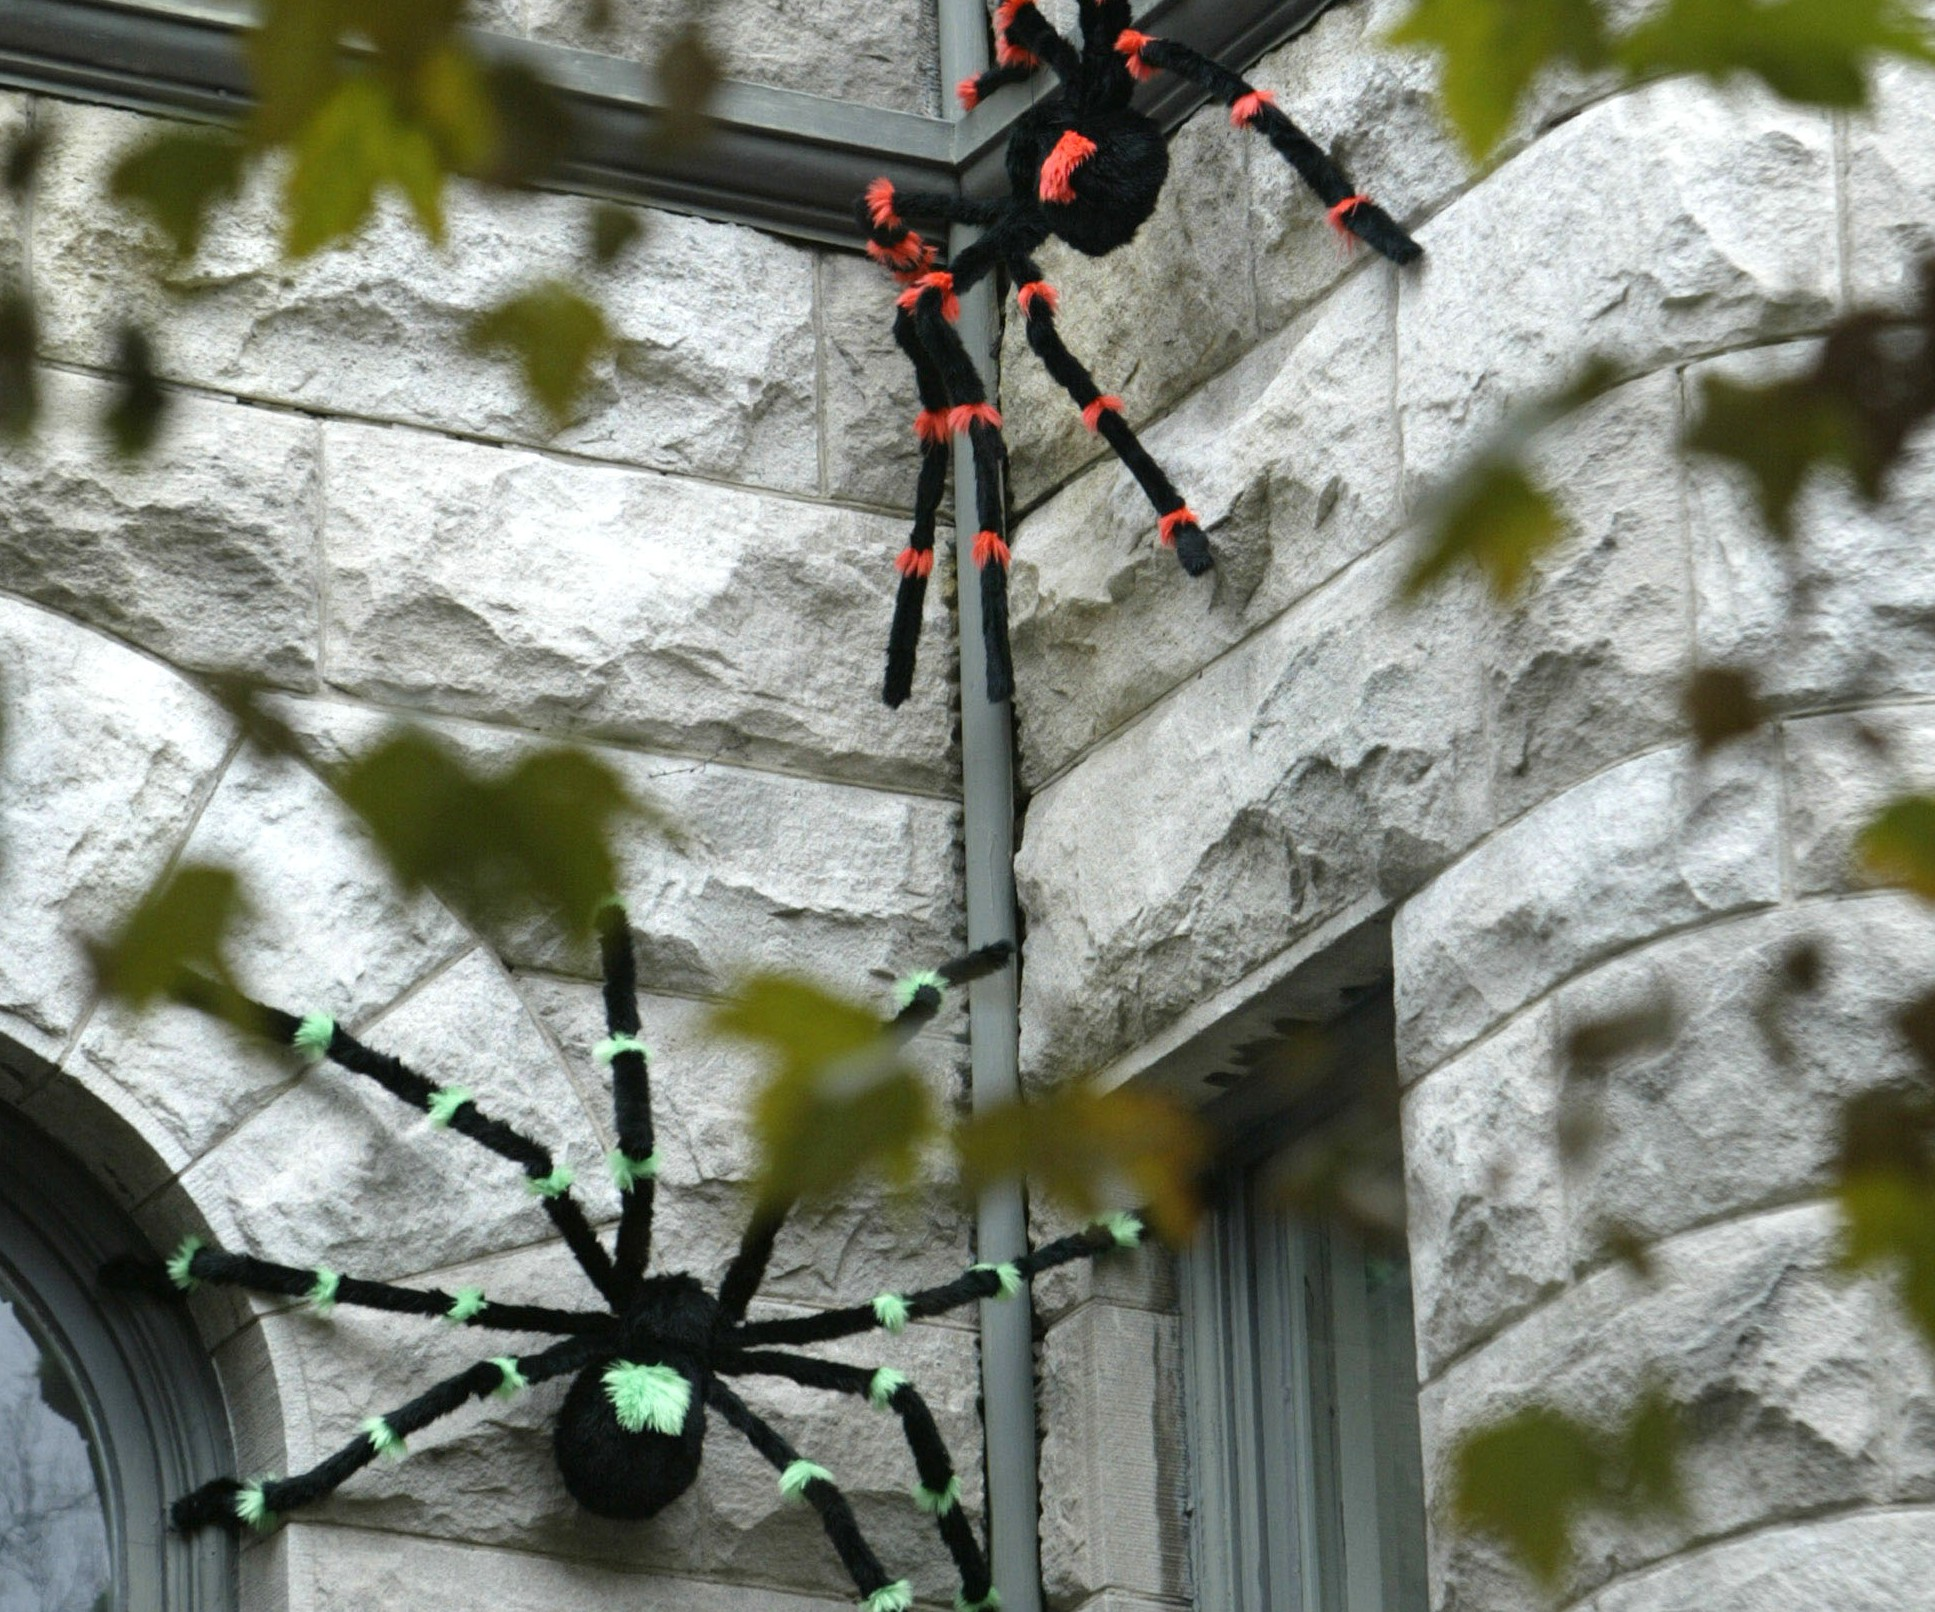 Giant decorative spiders appear to crawl up the front of a home  in Washington, DC. (Getty)